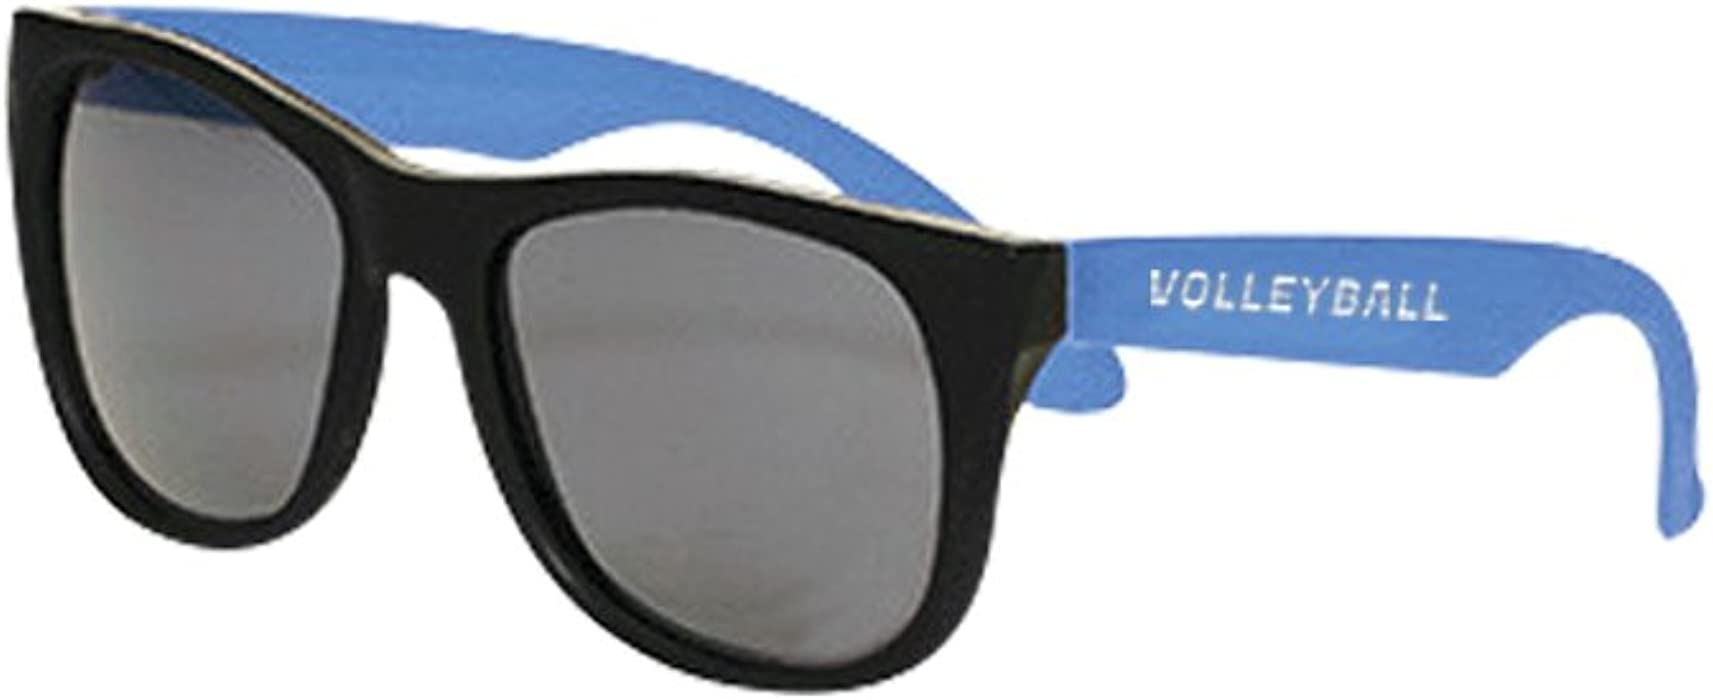 Volleyball Retro Sunglasses, Black/Royal, One Size at Amazon ...